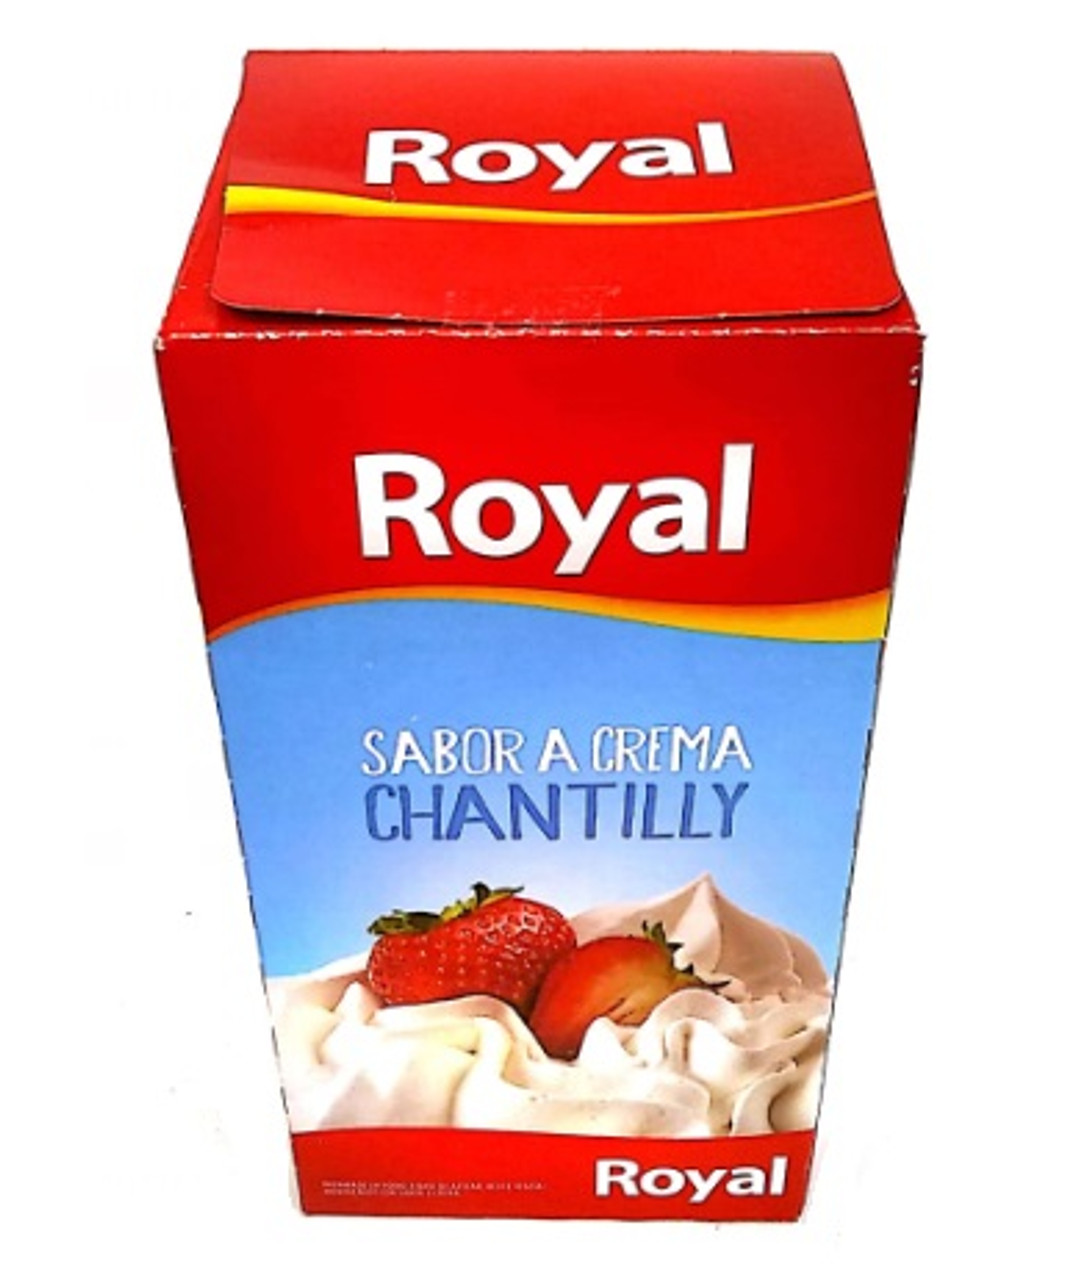 Royal Sabor Crema Chantilly Ready To Make Chantilly Cream 8 Servings Per Pouch 50 G 1 76 Oz Box Of 6 Pouches Pampa Direct